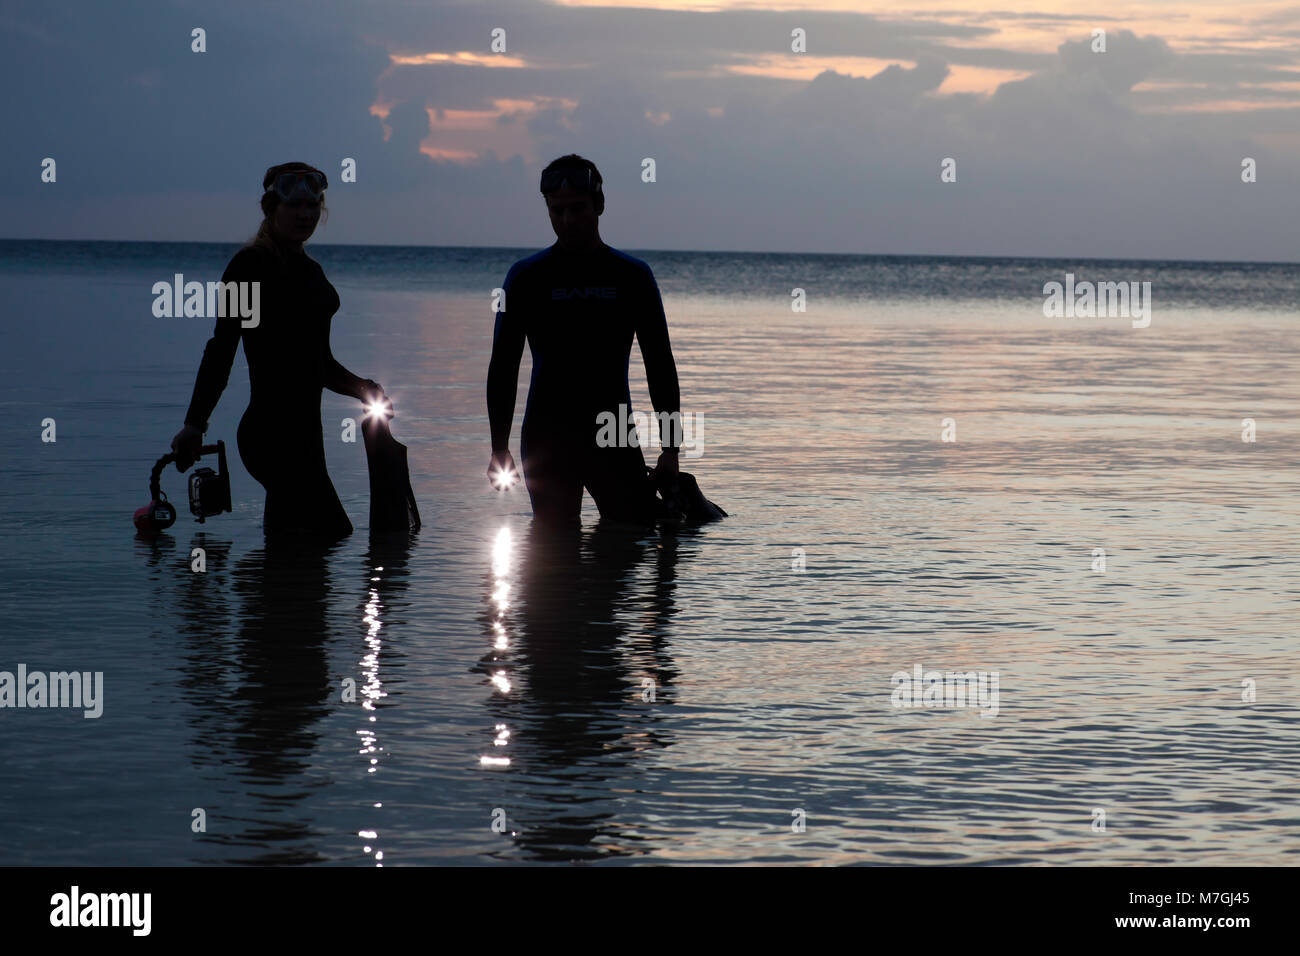 Divers (MR) entering the ocean with lights at dusk, Indonesia. Stock Photo